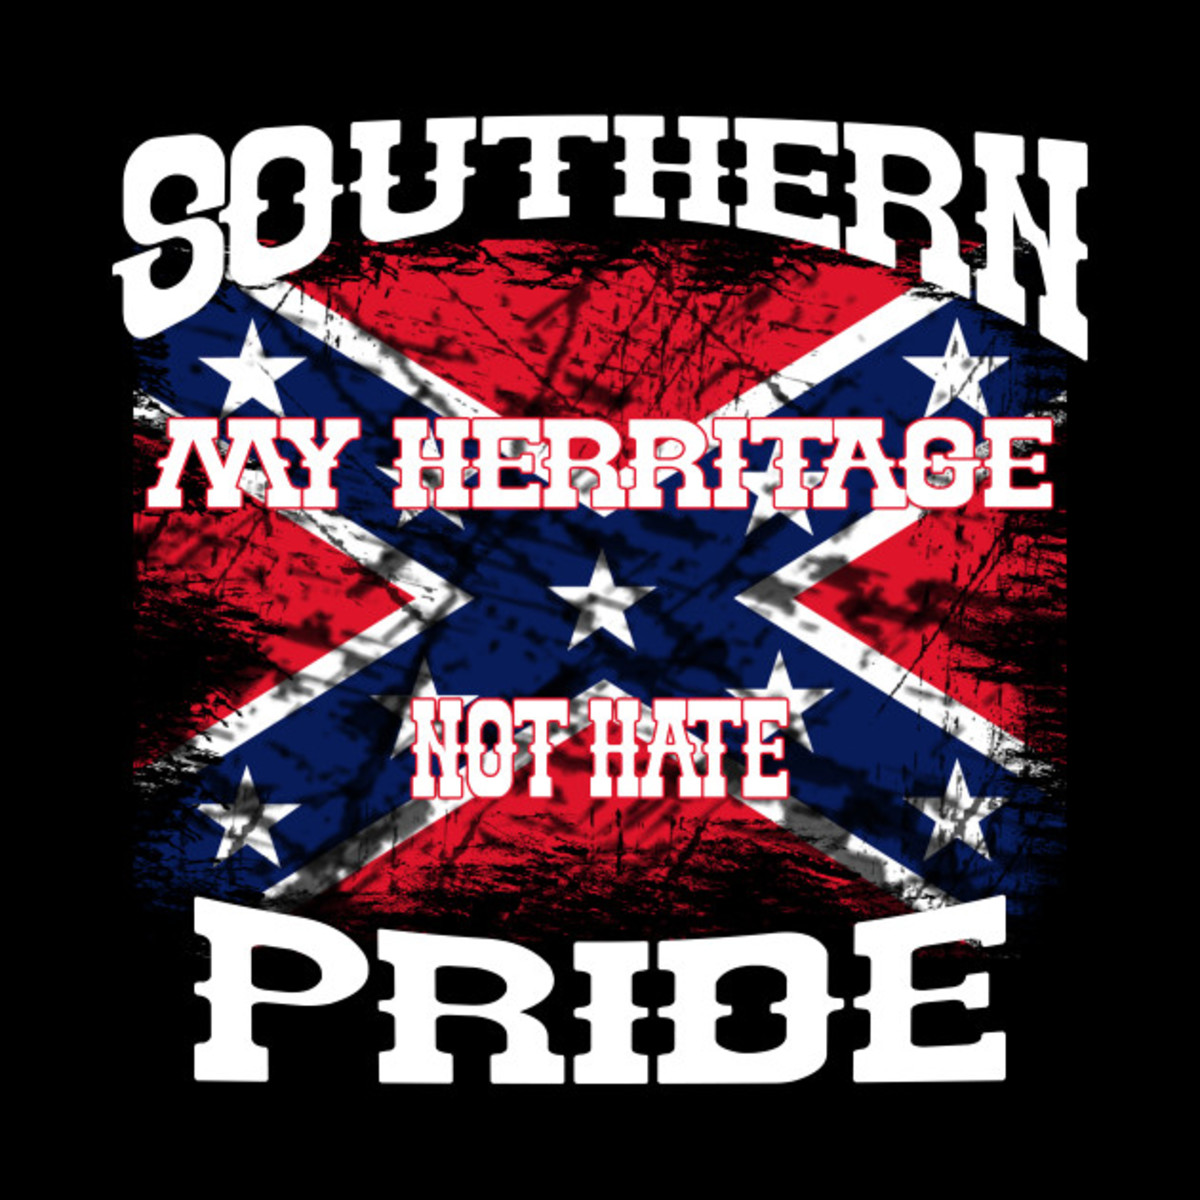 confederacy-stands-for-white-supremacy